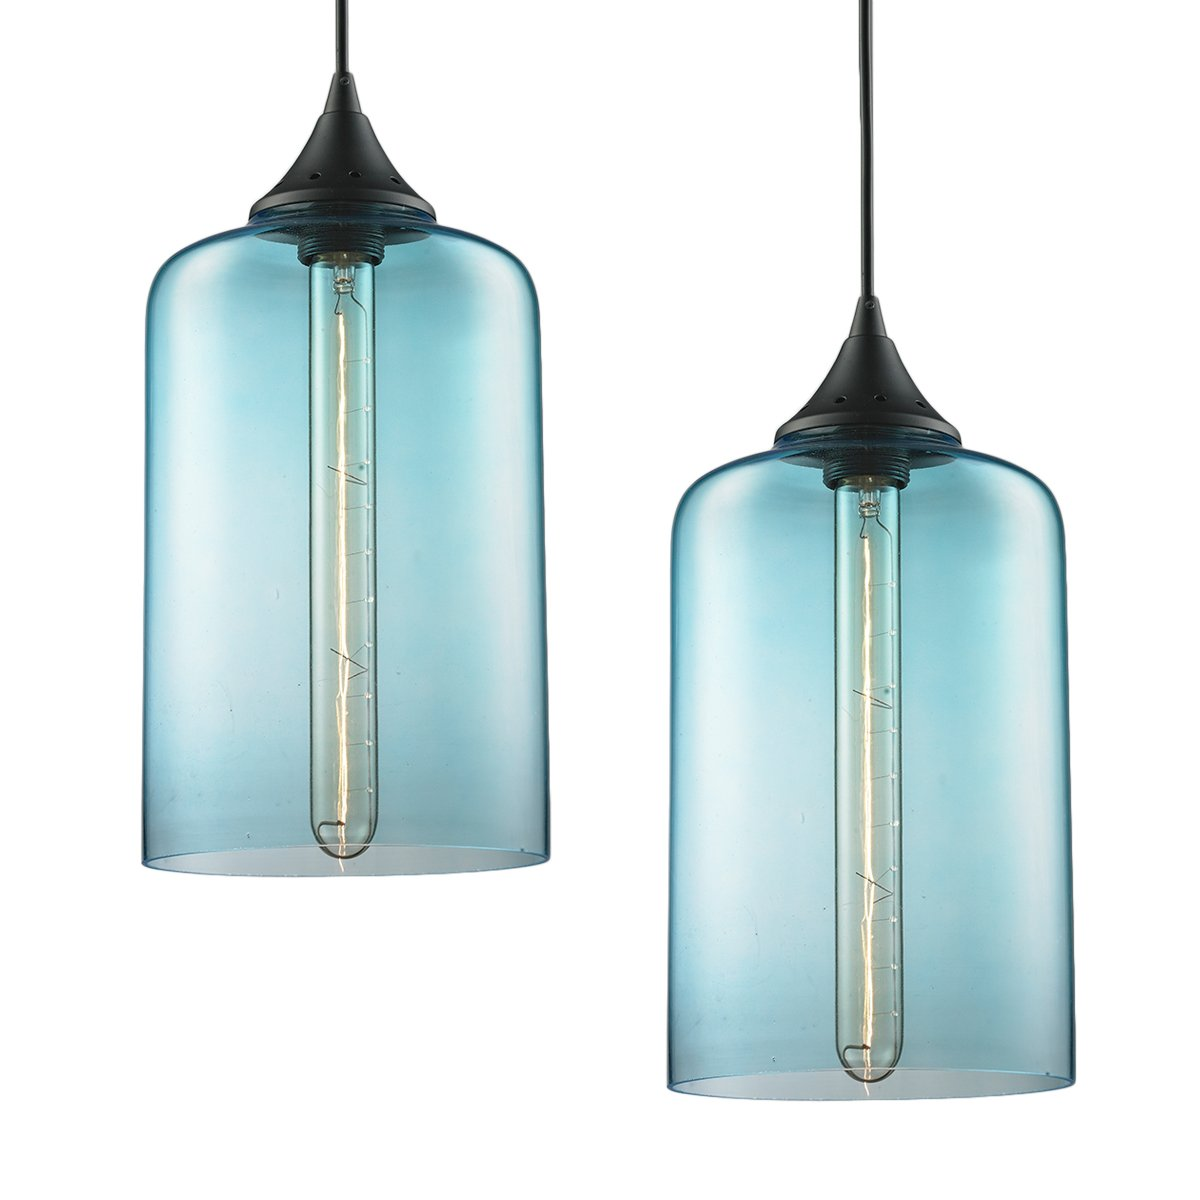 2-Pack Modern Industrial Vintage Glass Globe Pendant Light - MKLOT Minimalist Eco-Power Edison Style 7.09'' Wide Hanging Chandelier Ceiling Lighting Mounted Fixture with Blue Glass